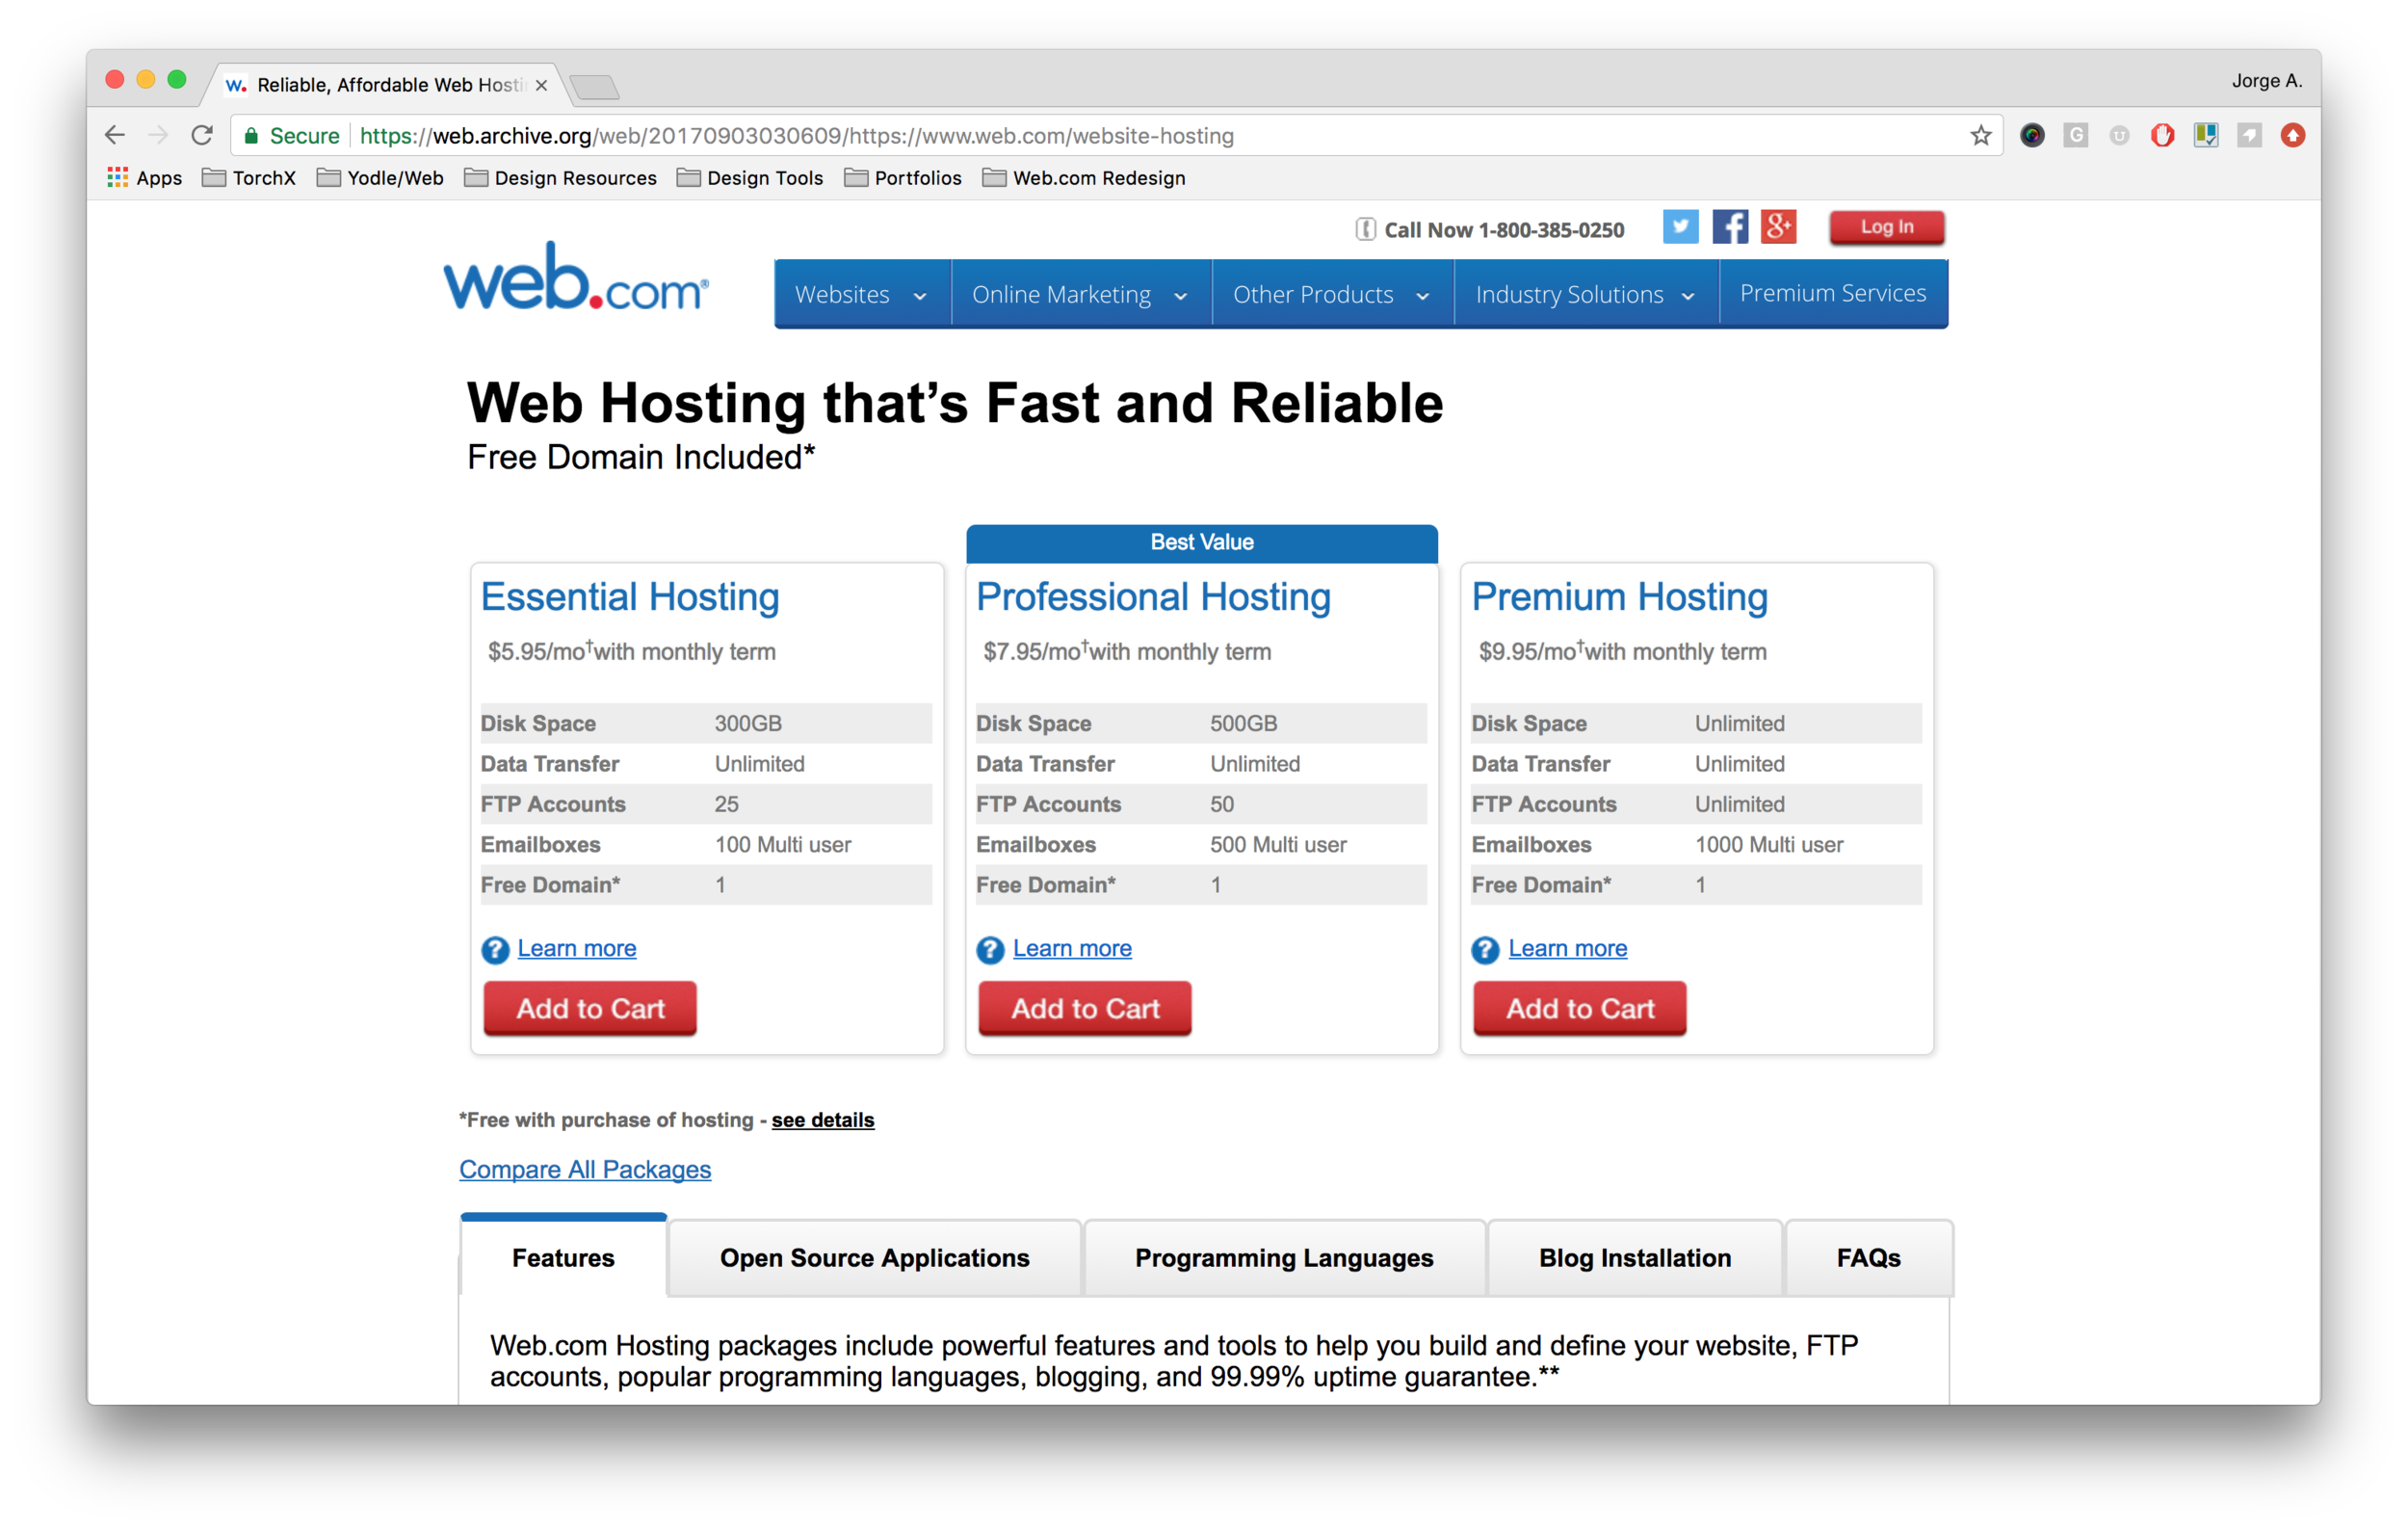 Old Web.com Hosting Product Page